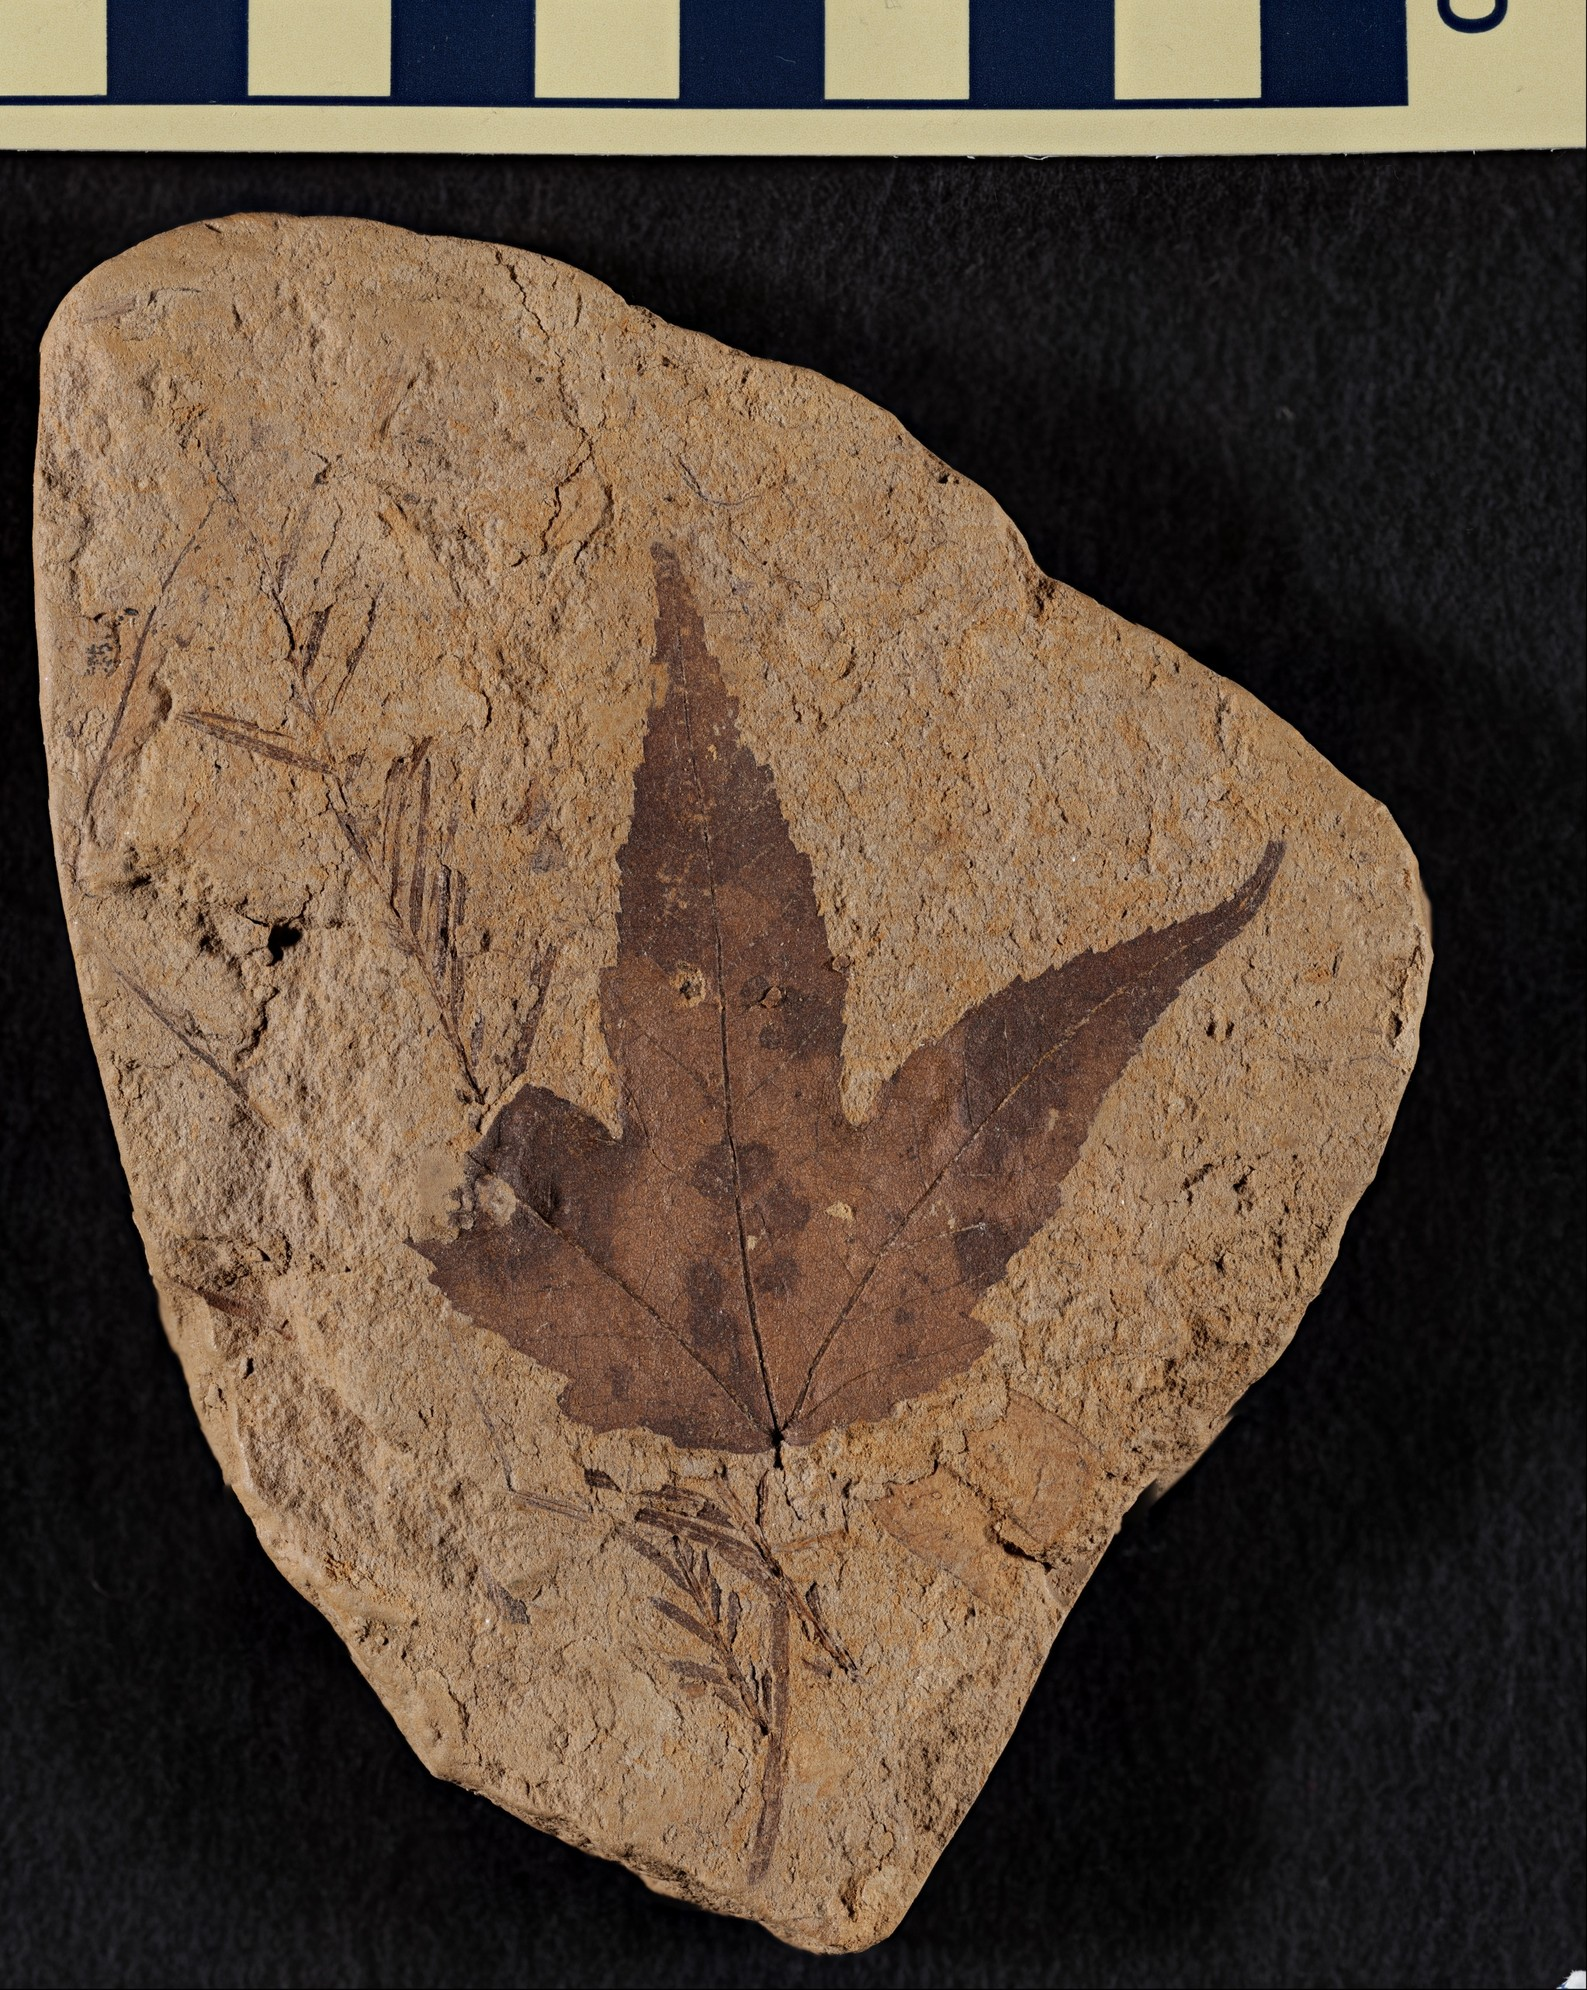 Fossil Acer dacycarpoides